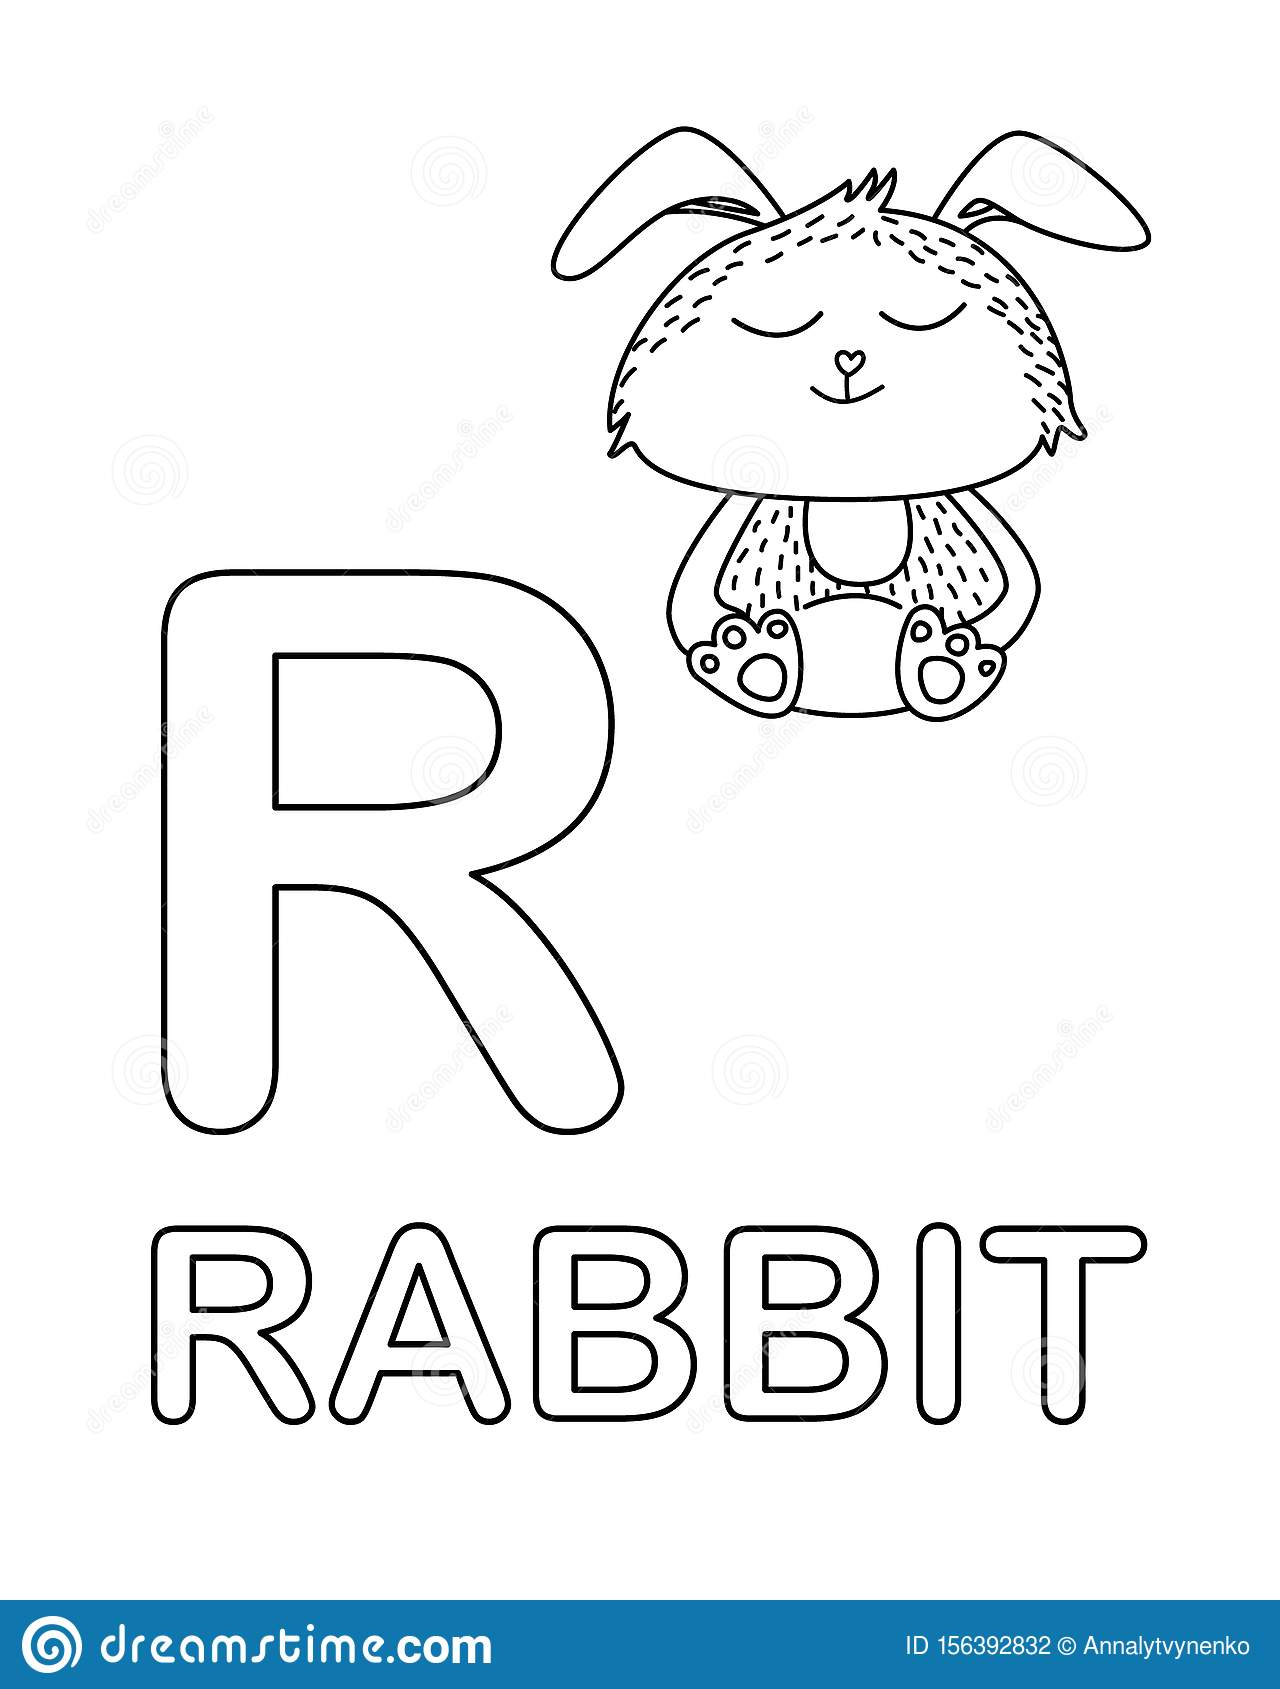 Cute Rabbit Icon With English Alphabet Letter R In Outline